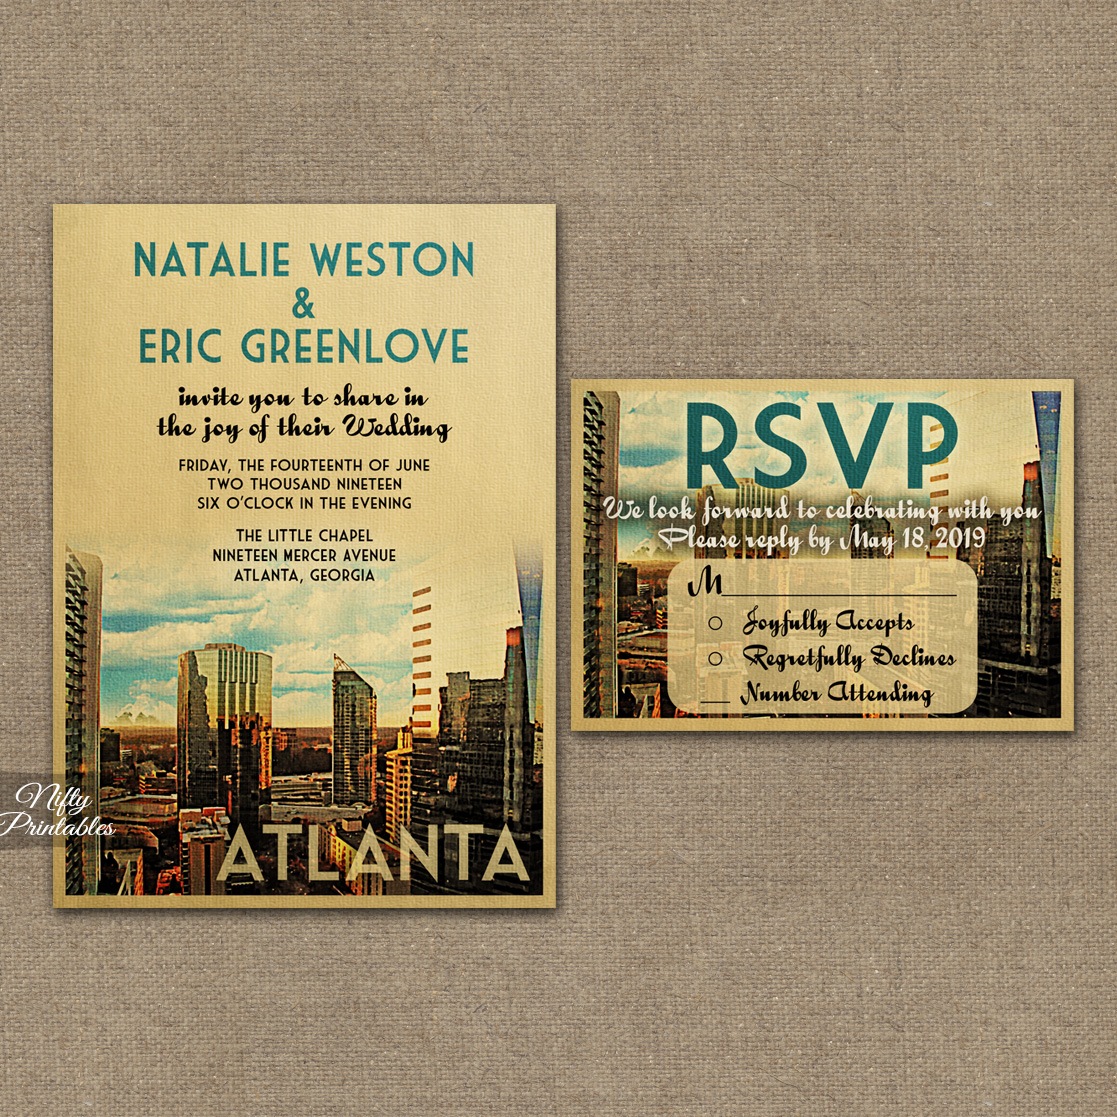 Atlanta Save The Date Postcards VTW Atlanta Save The Date Postcards VTW